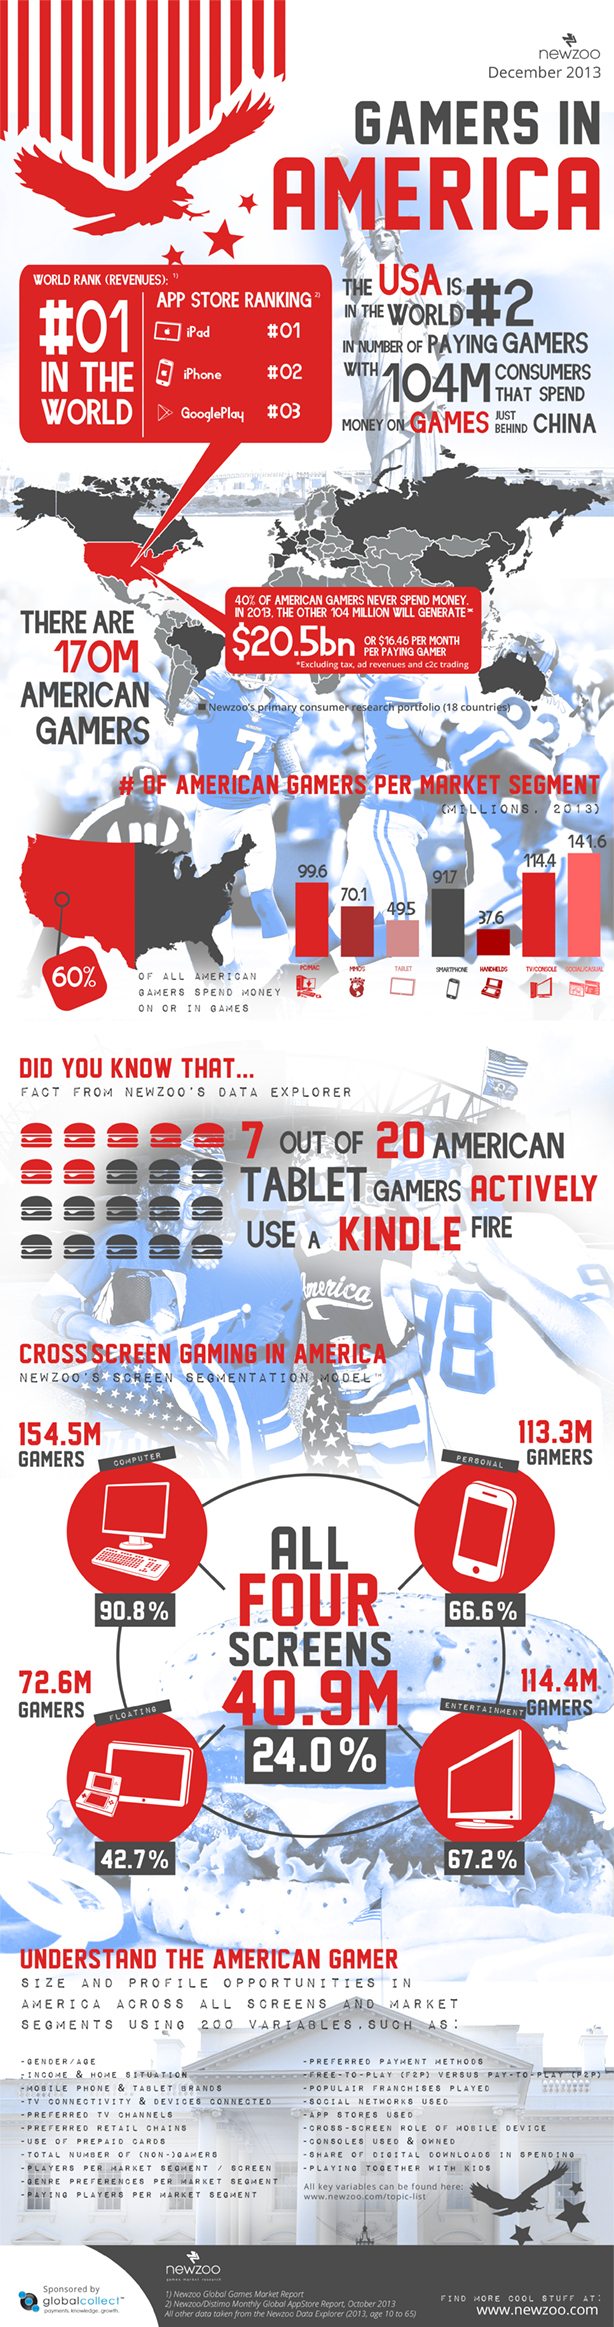 Newzoo's infographic on the state of the American gaming industry.